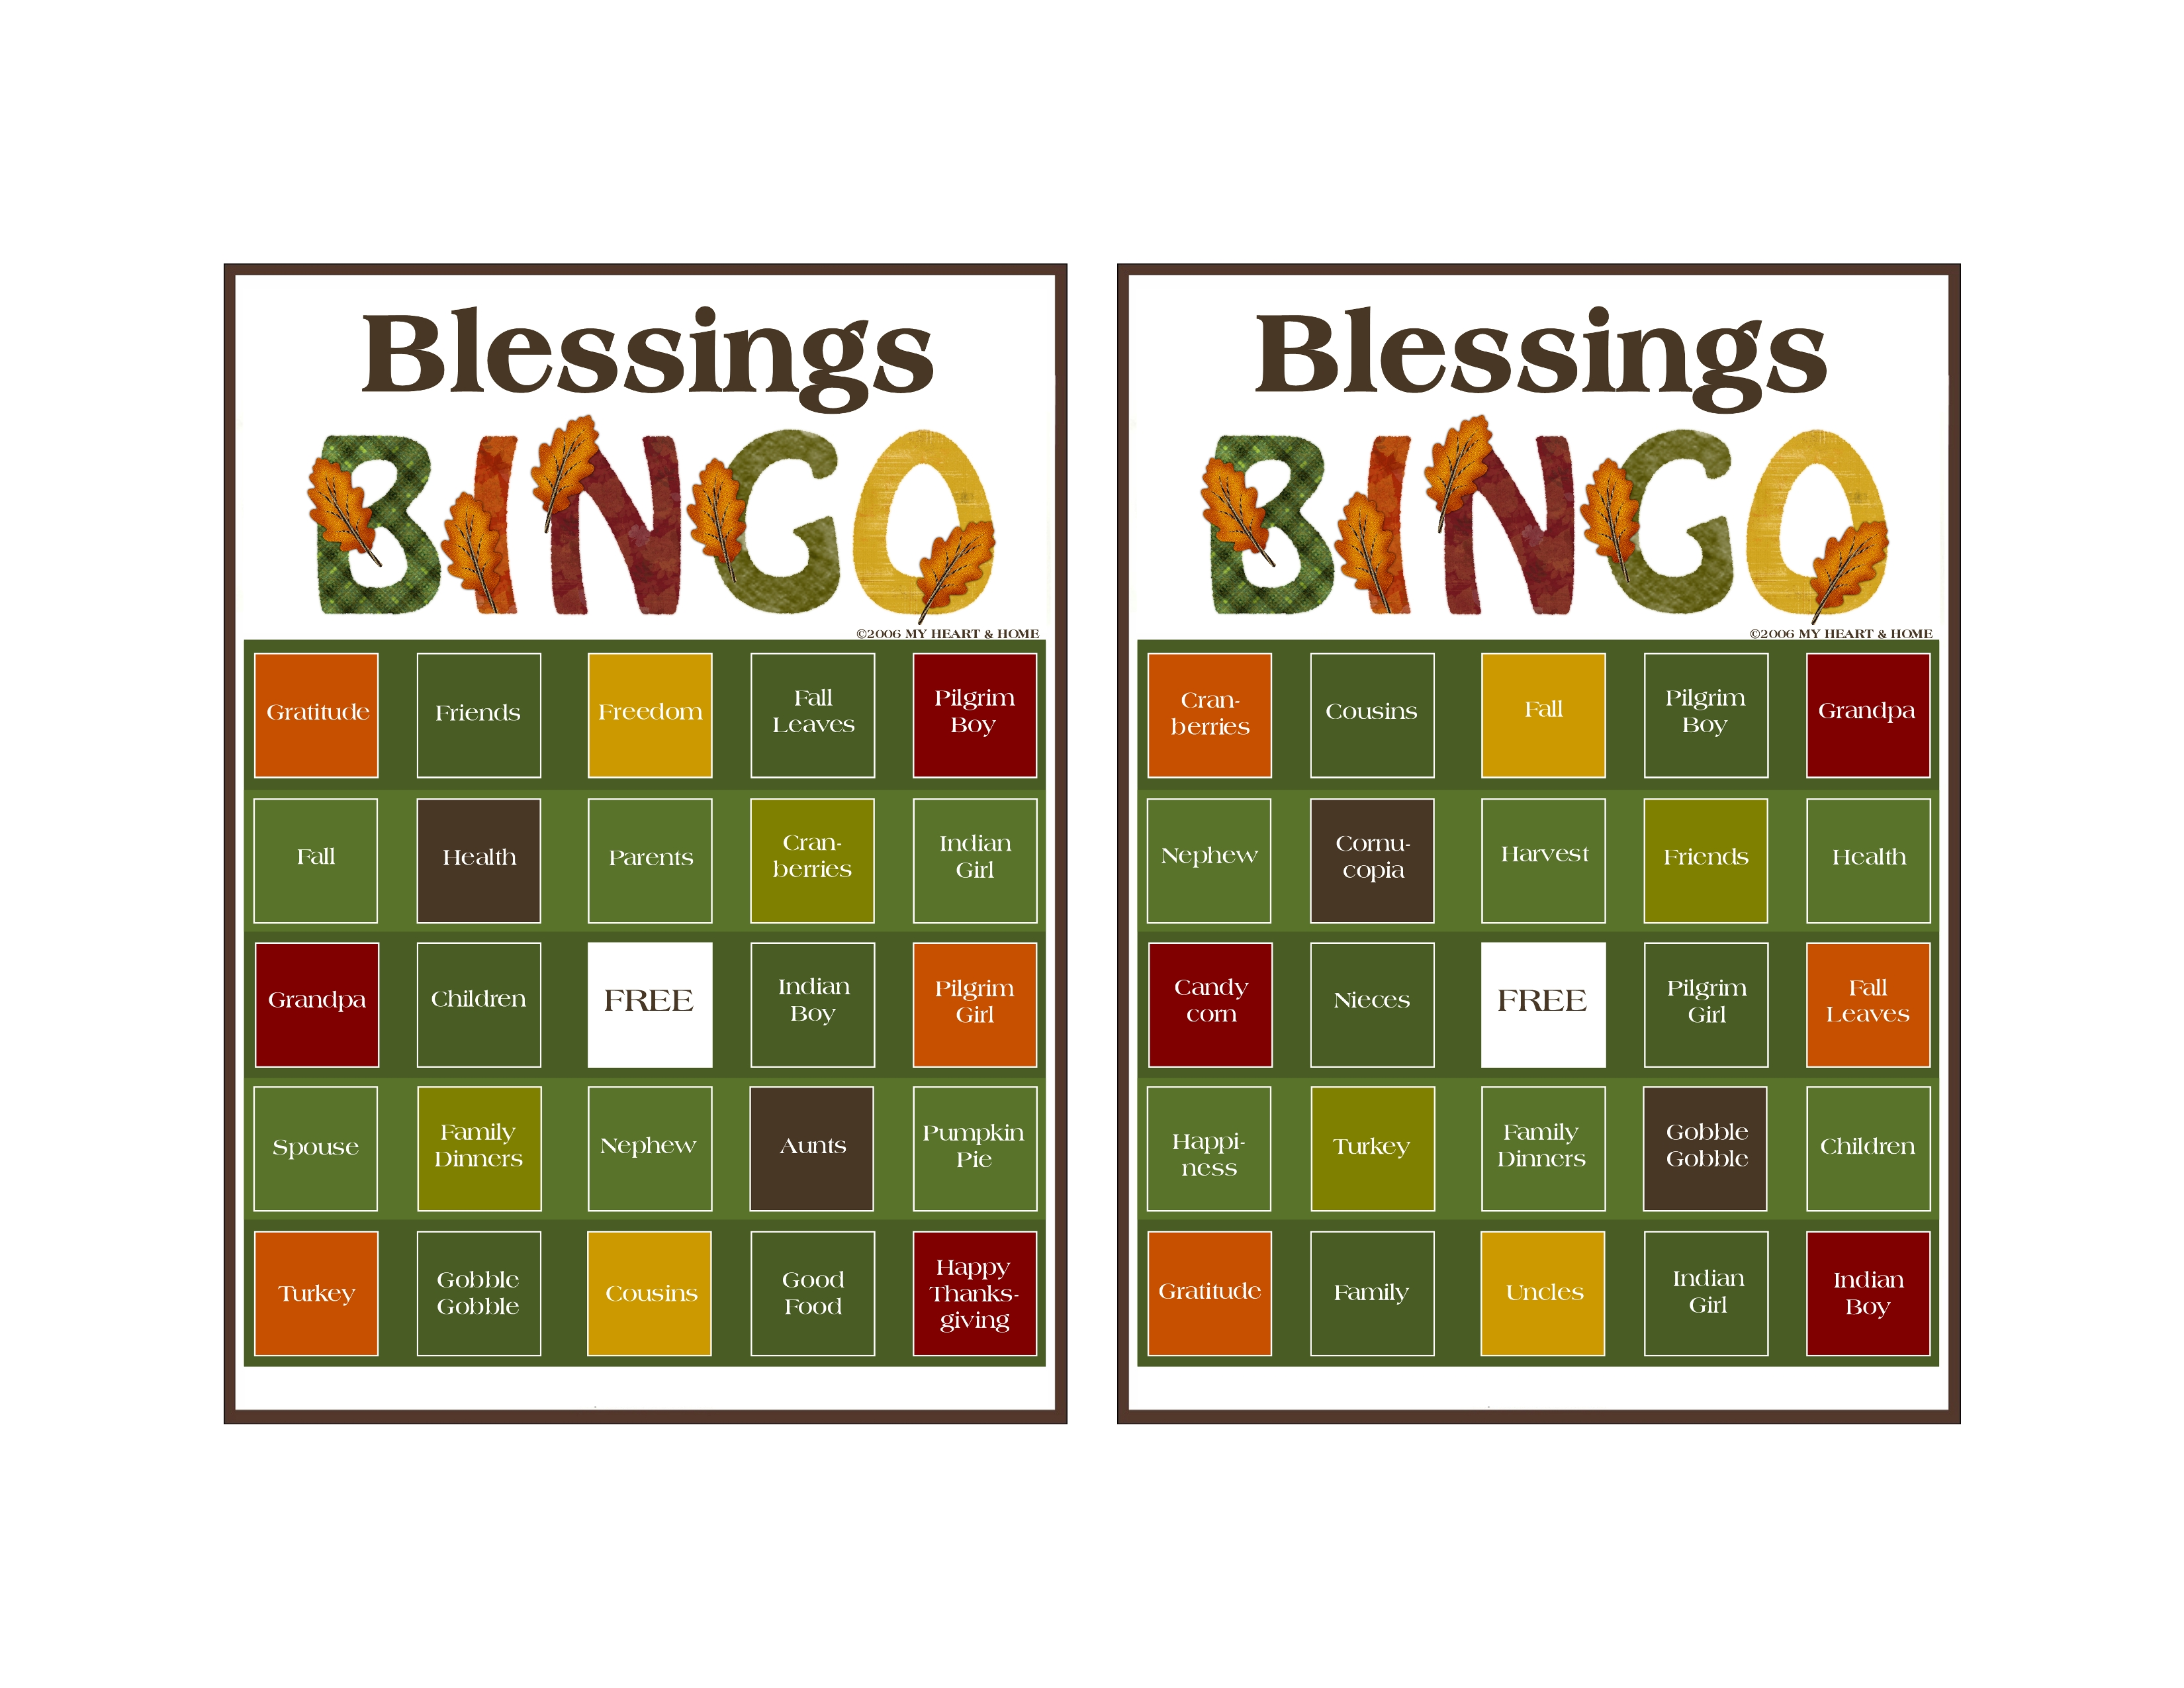 9 Images of Blessings Printable Bingo Template